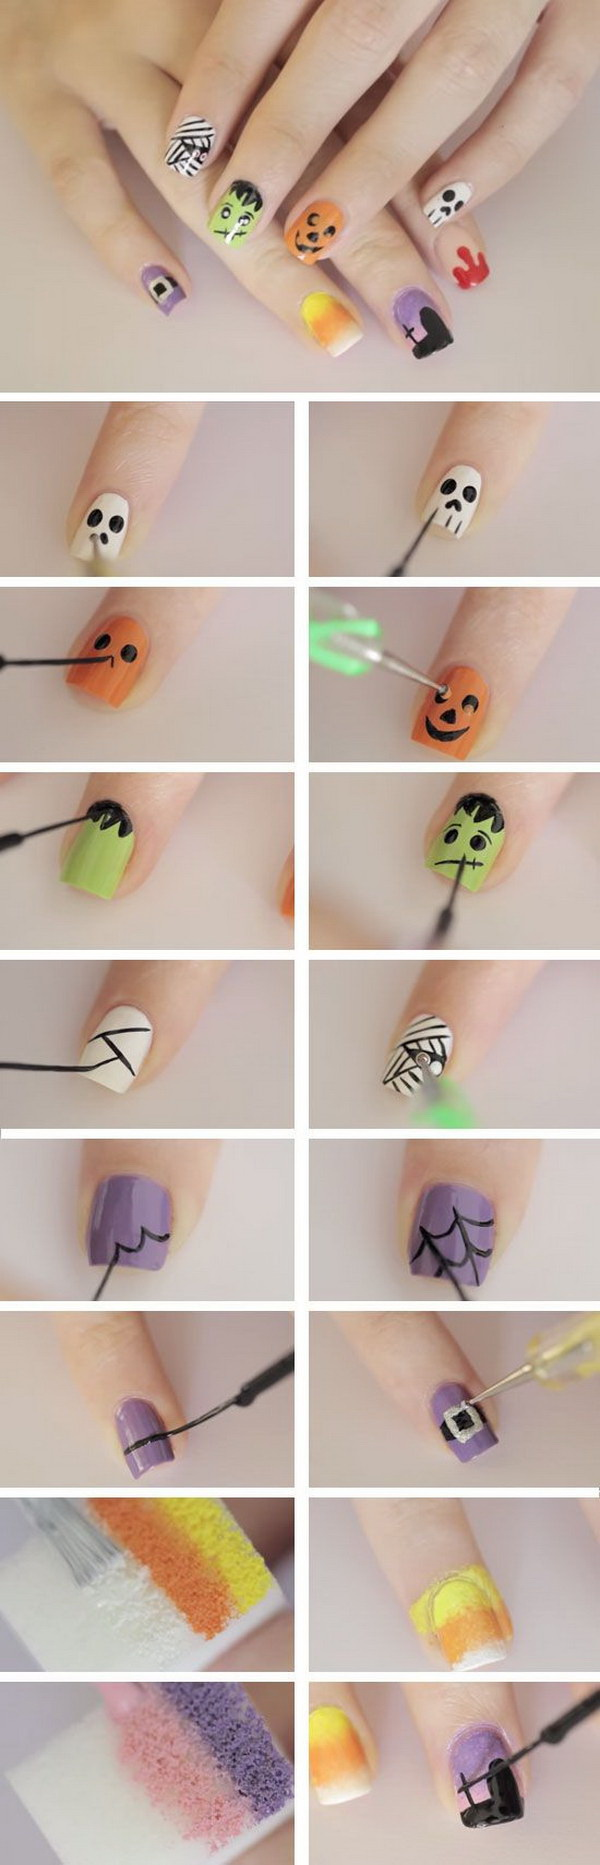 Nail Art Designs Step By Step | Diy Halloween Nail Art Designs With Step By Step Tutorials For